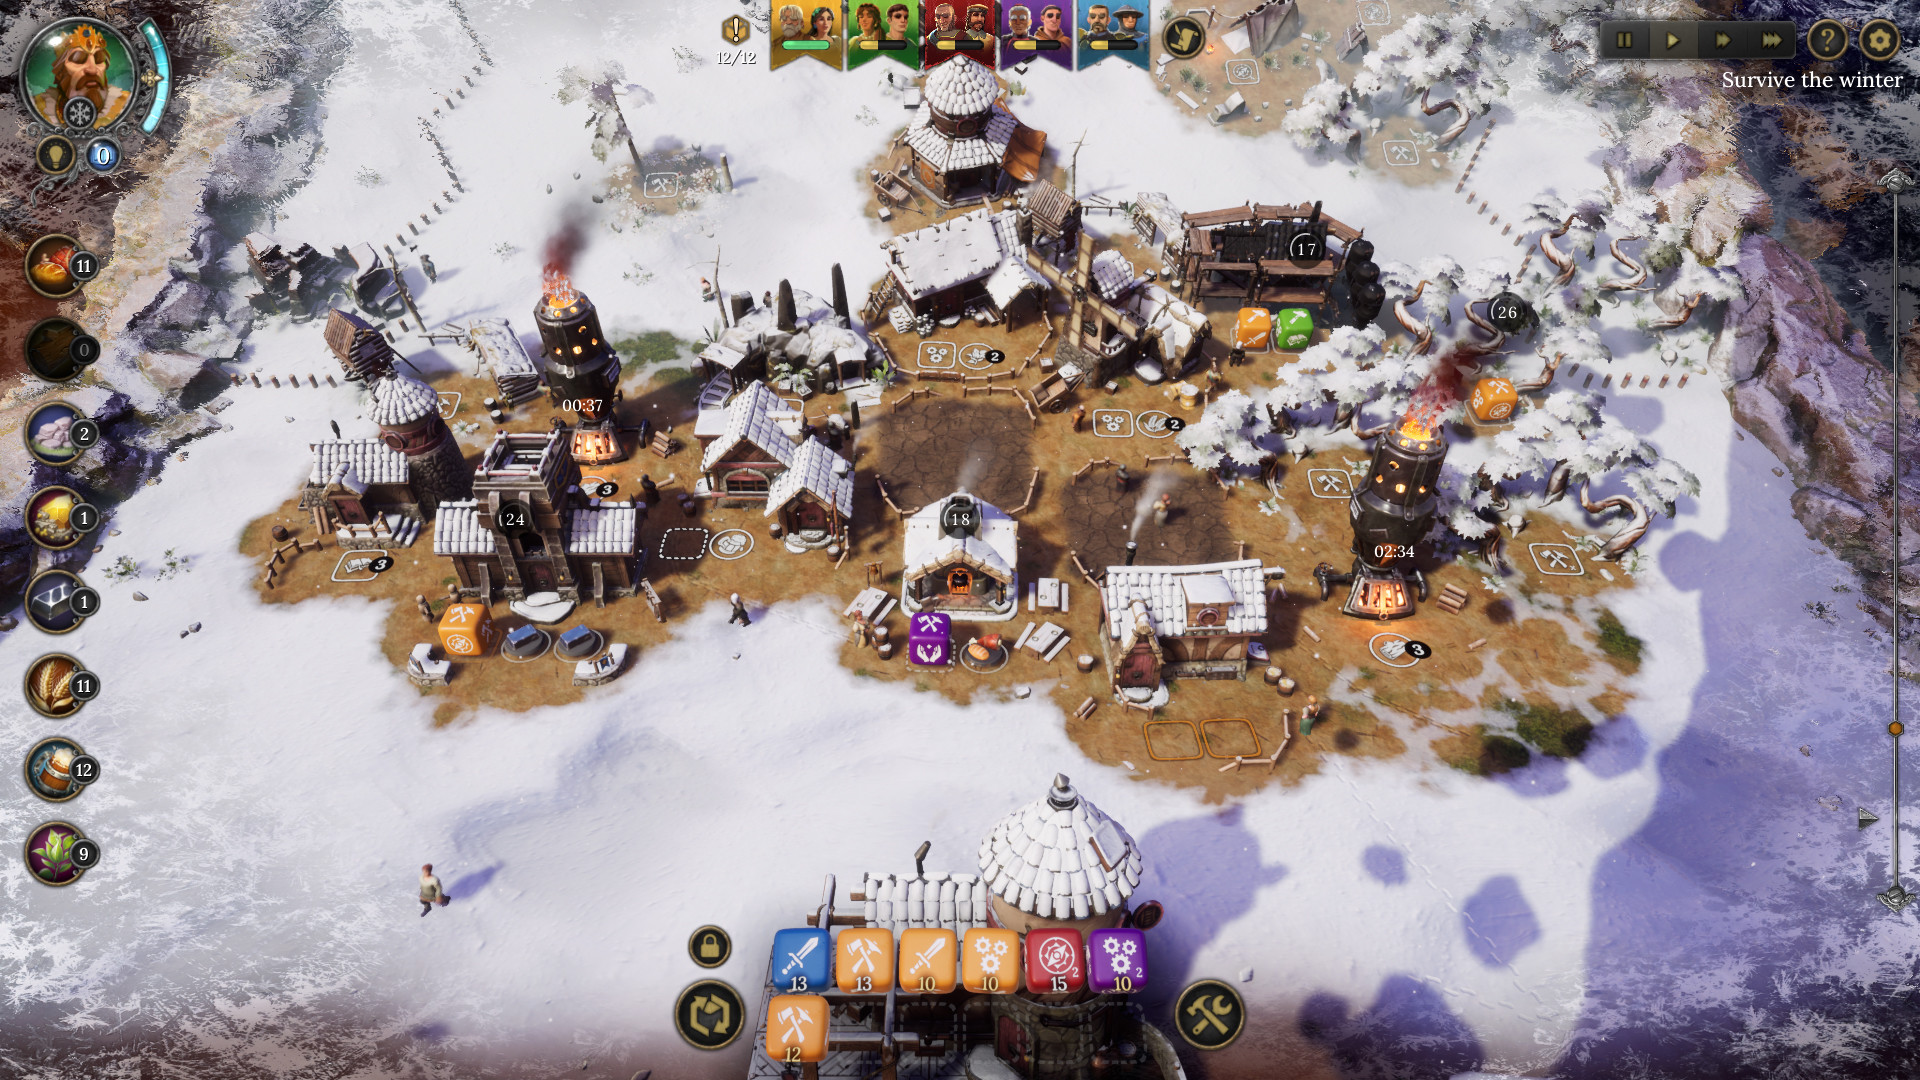 A top down view of a small settlement during winter in Dice Legacy.